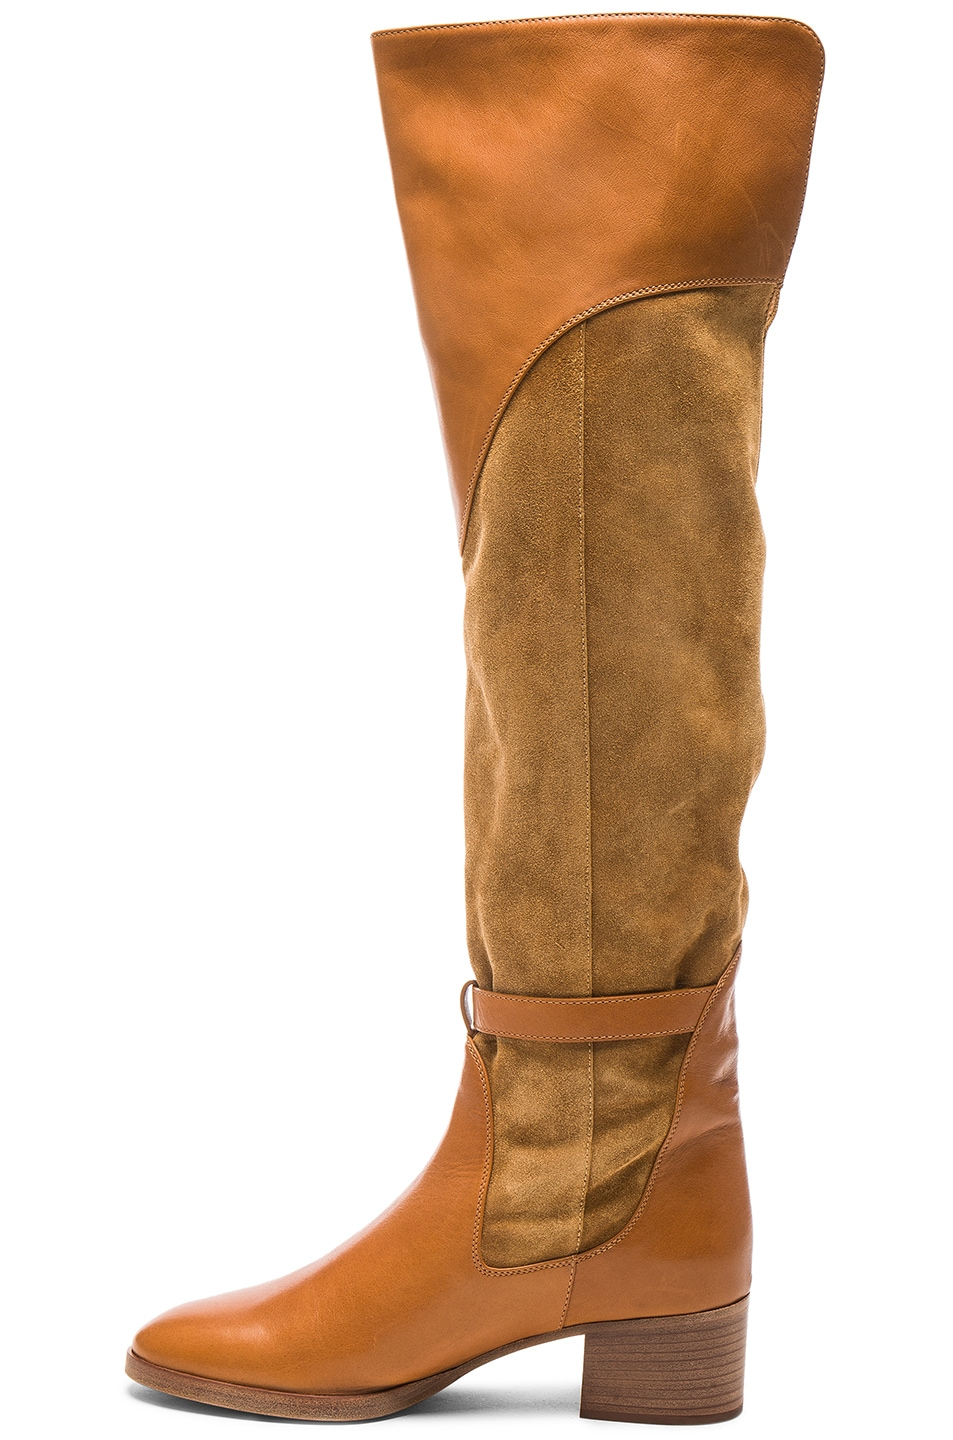 Image 5 of Chloe Suede Lenny Over the Knee Boots in Dune